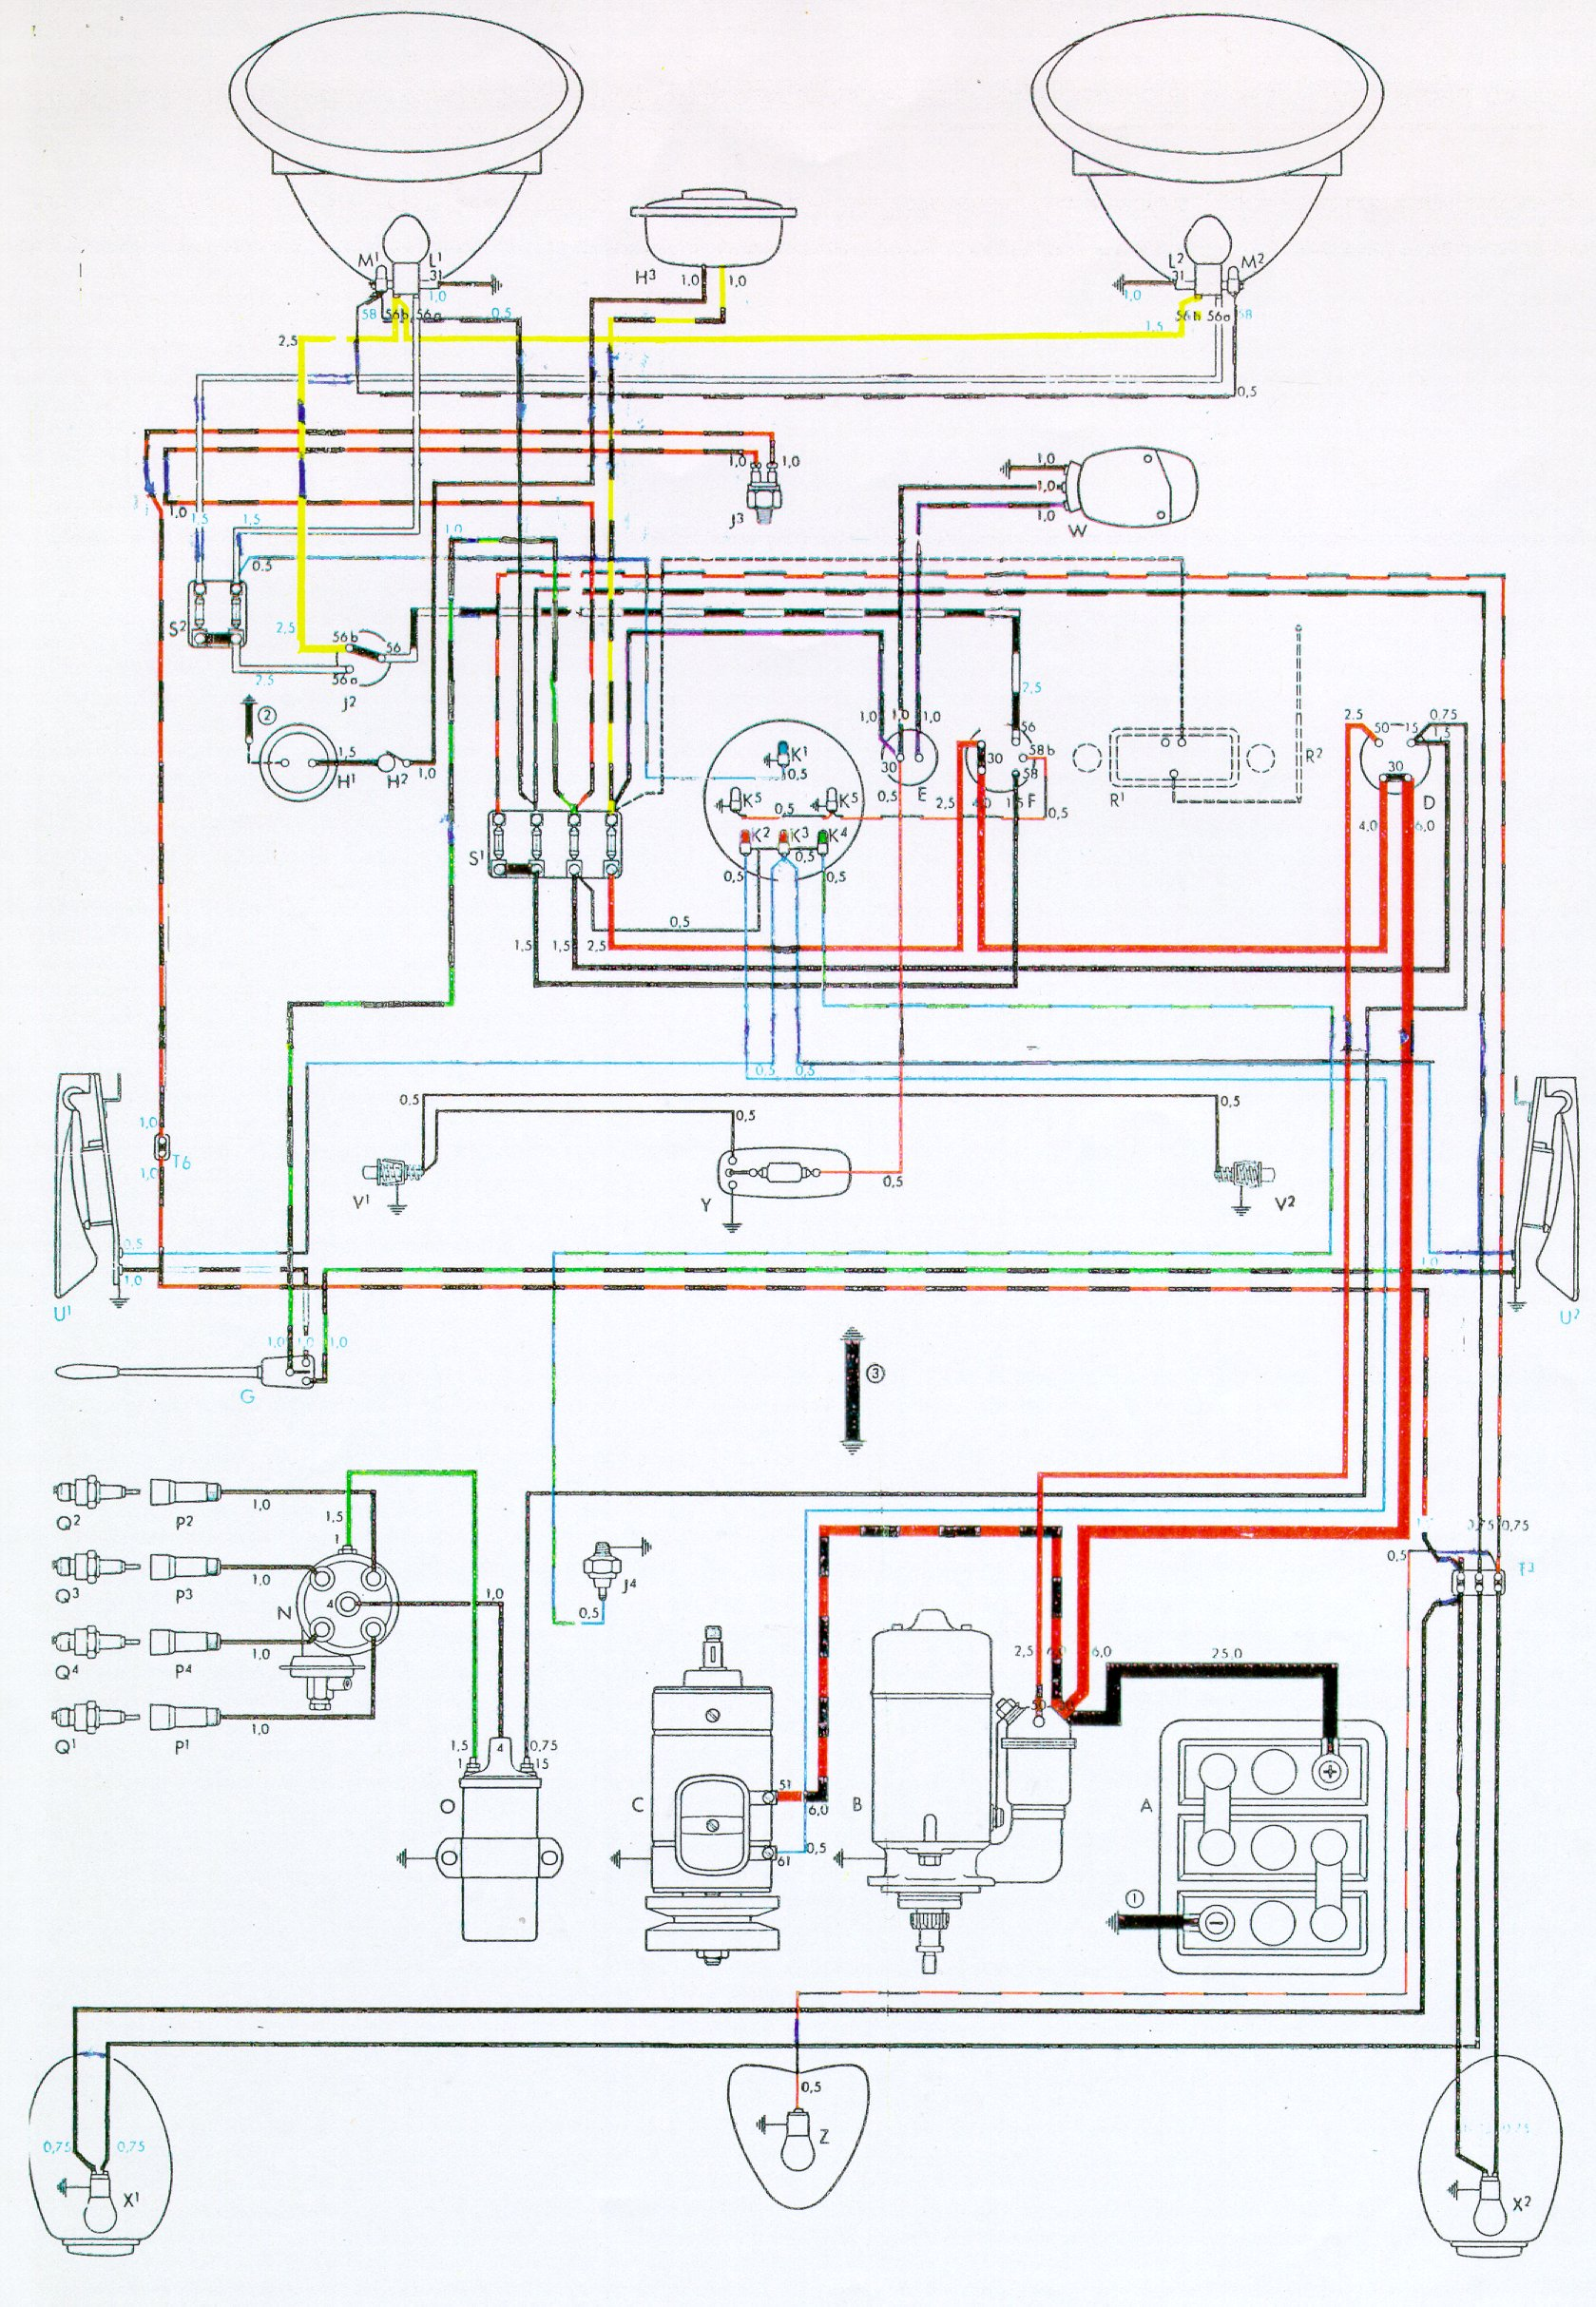 WRG-7297] Wiring Diagram For Air Cooled Vw on